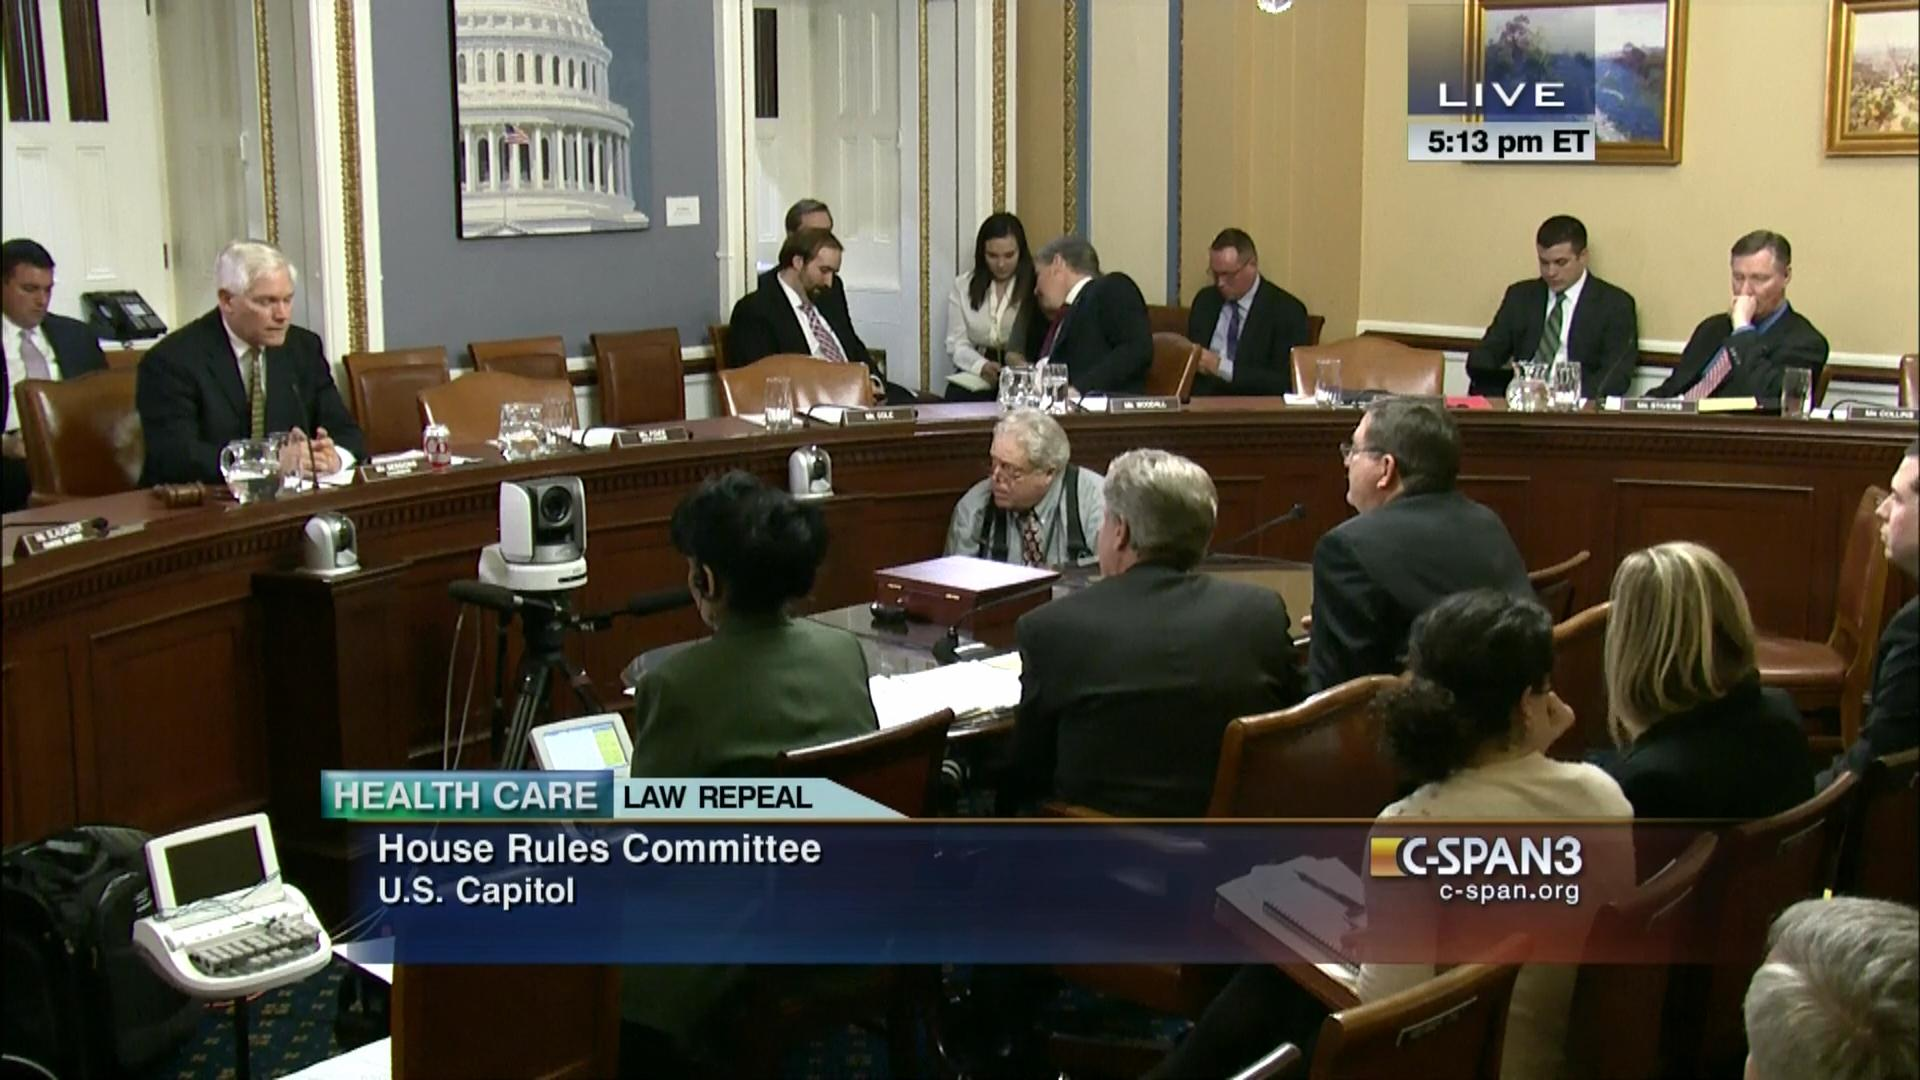 Amazing House Rules Committee Meeting Affordable Care Act Repeal, Feb 2 2015 |  C SPAN.org